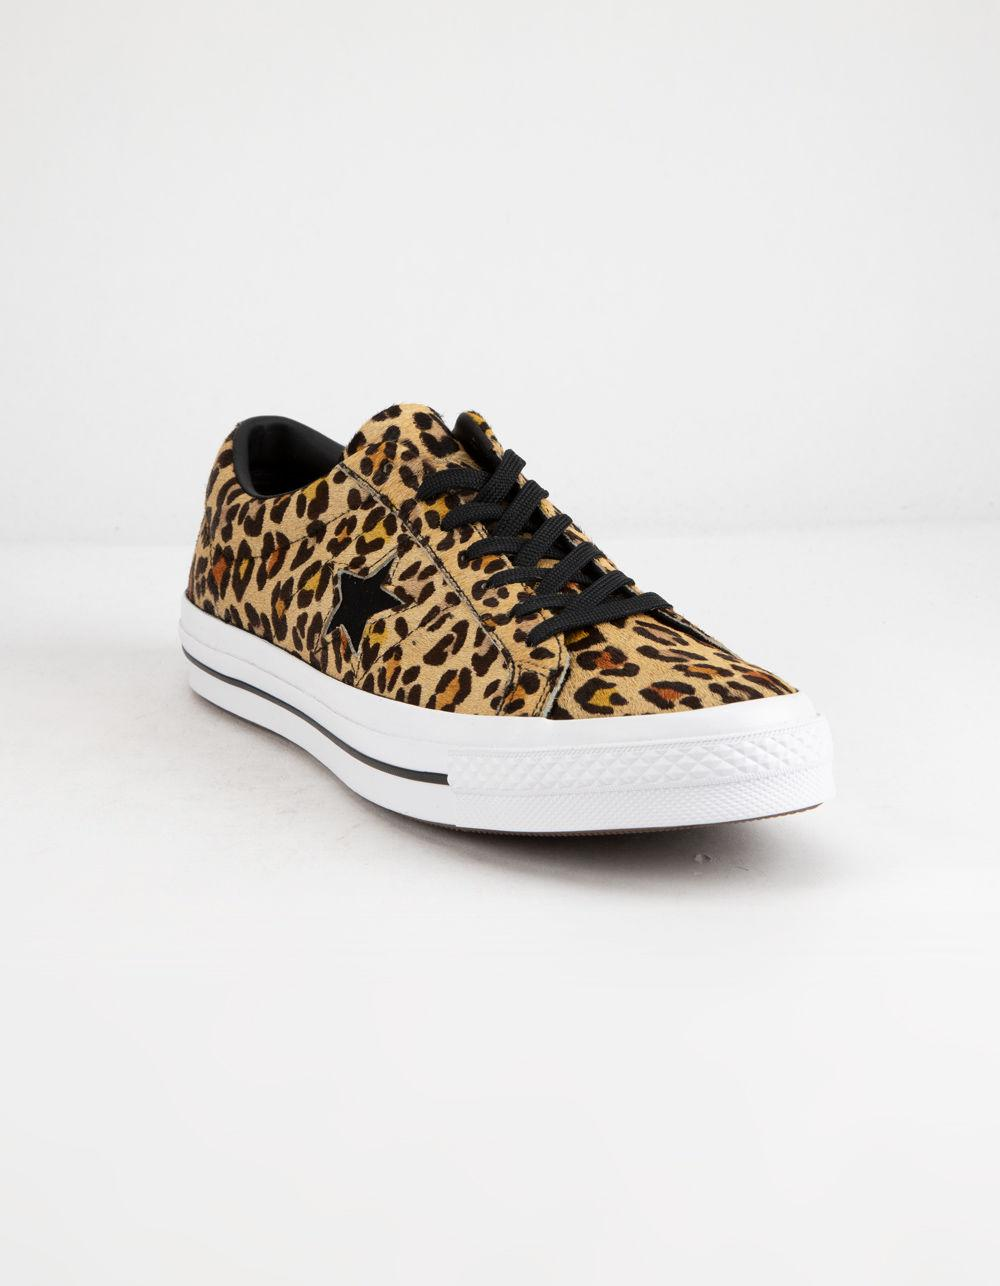 buy online 9bfe2 10cbd Converse One Star Ox Leopard Shoes - Lyst